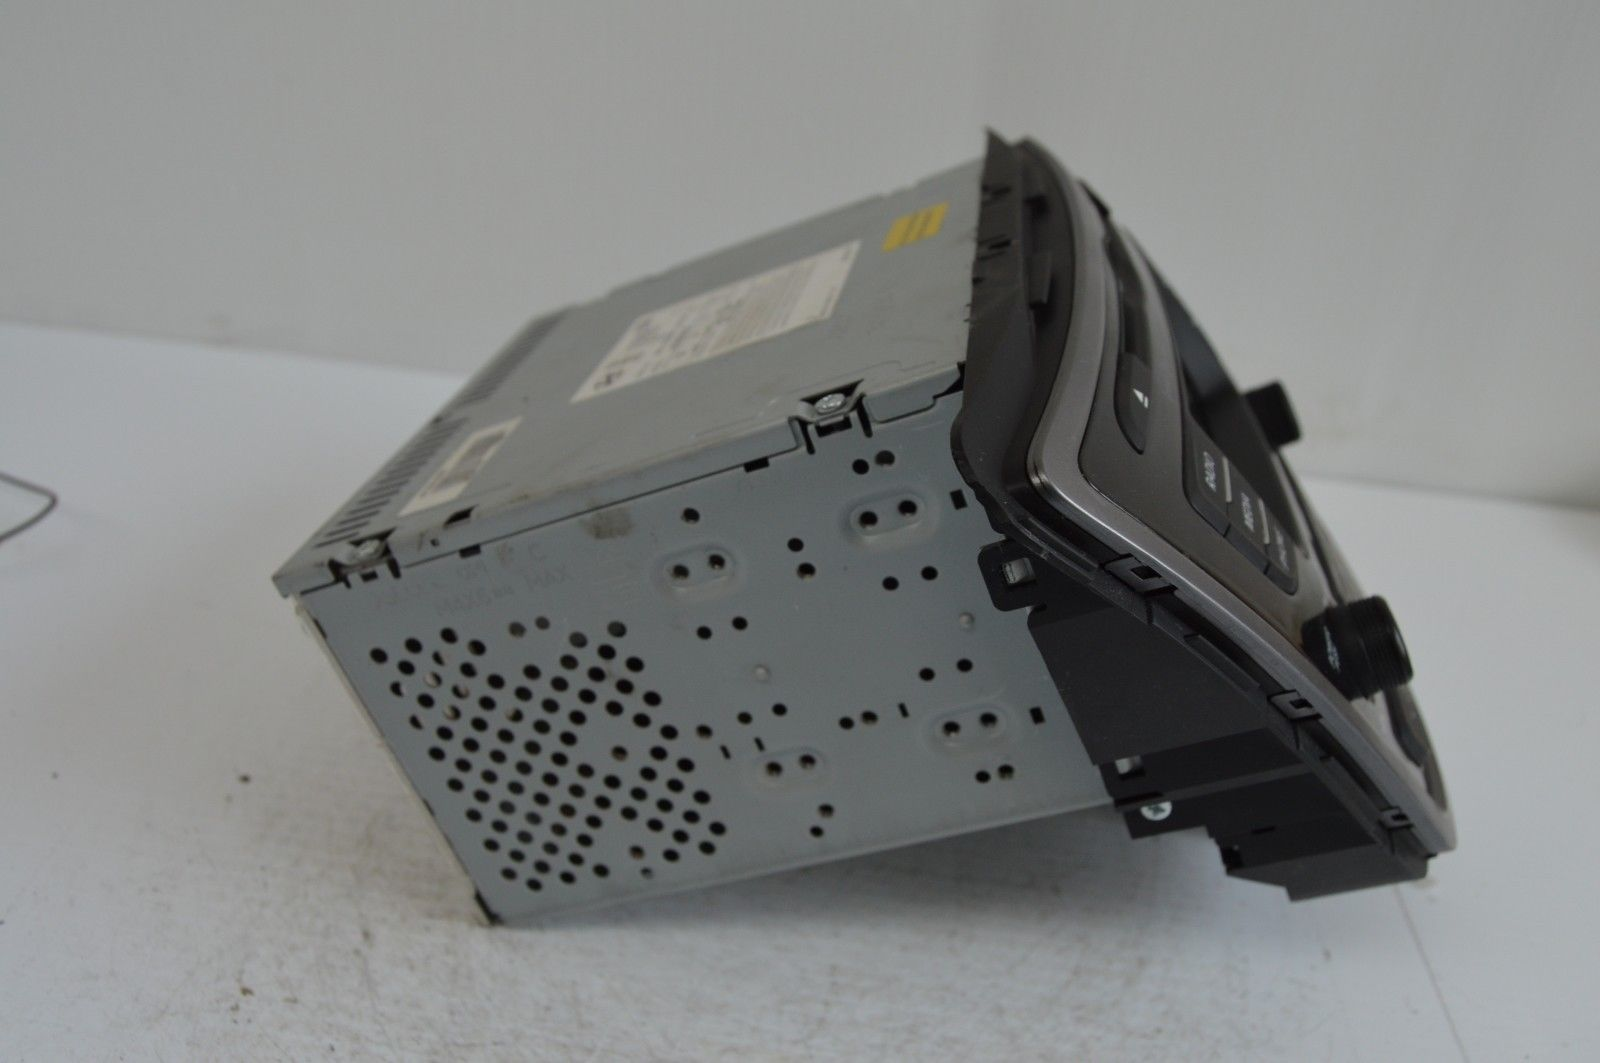 2011-2013 HYUNDAI ELANTRA RADIO CD PLAYER OEM RADIO 96170-3X165RA5 TESTD C54#014